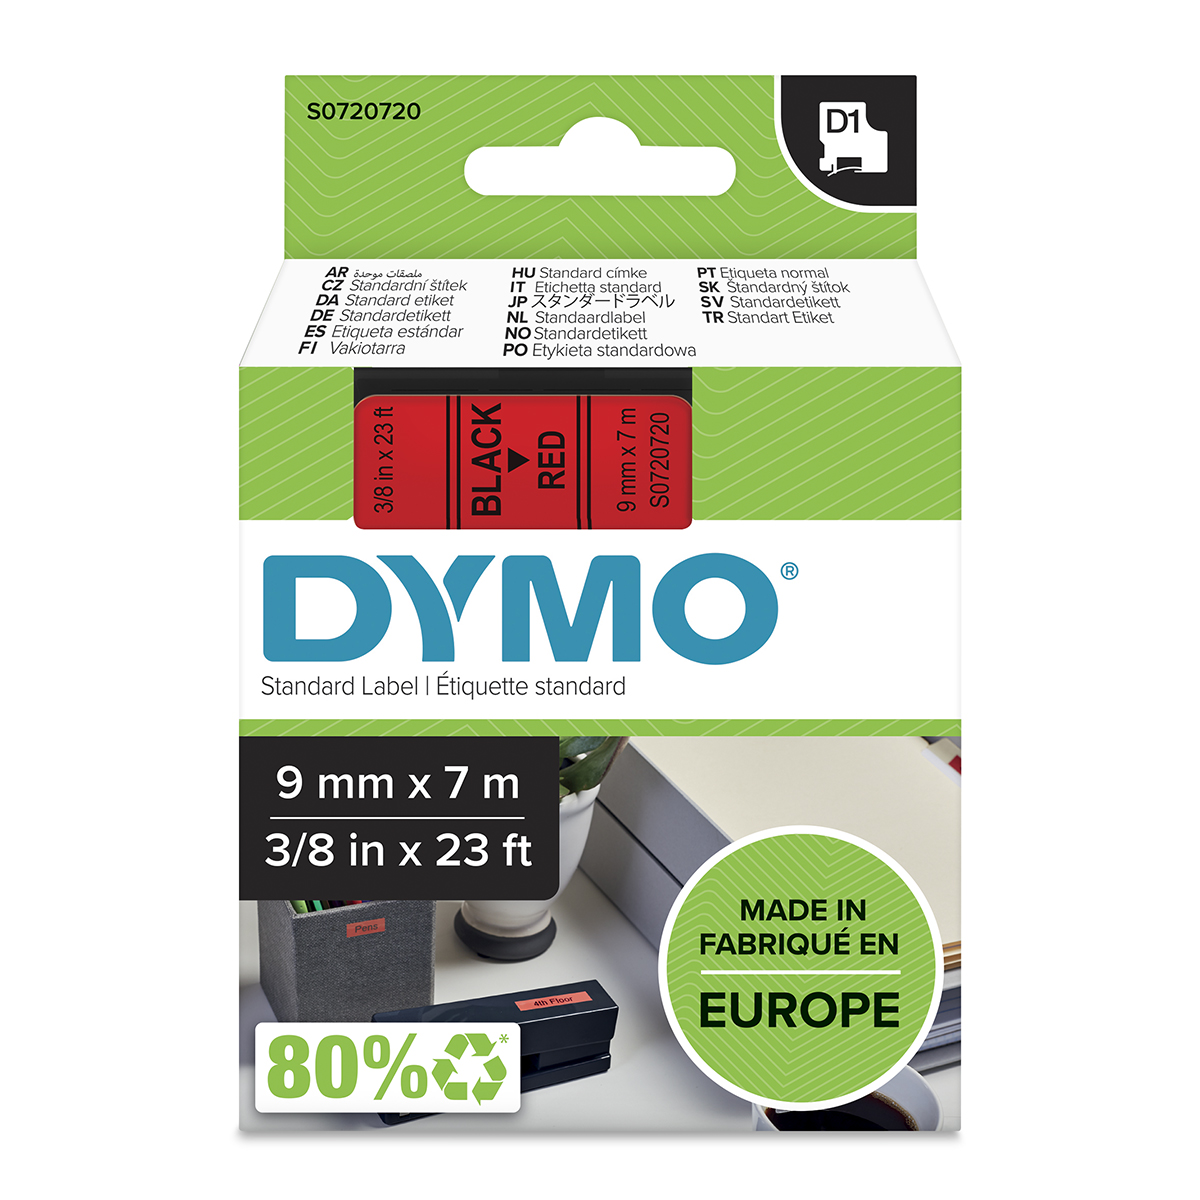 Dymo 40917 D1 9mm x 7m Black on Red Tape